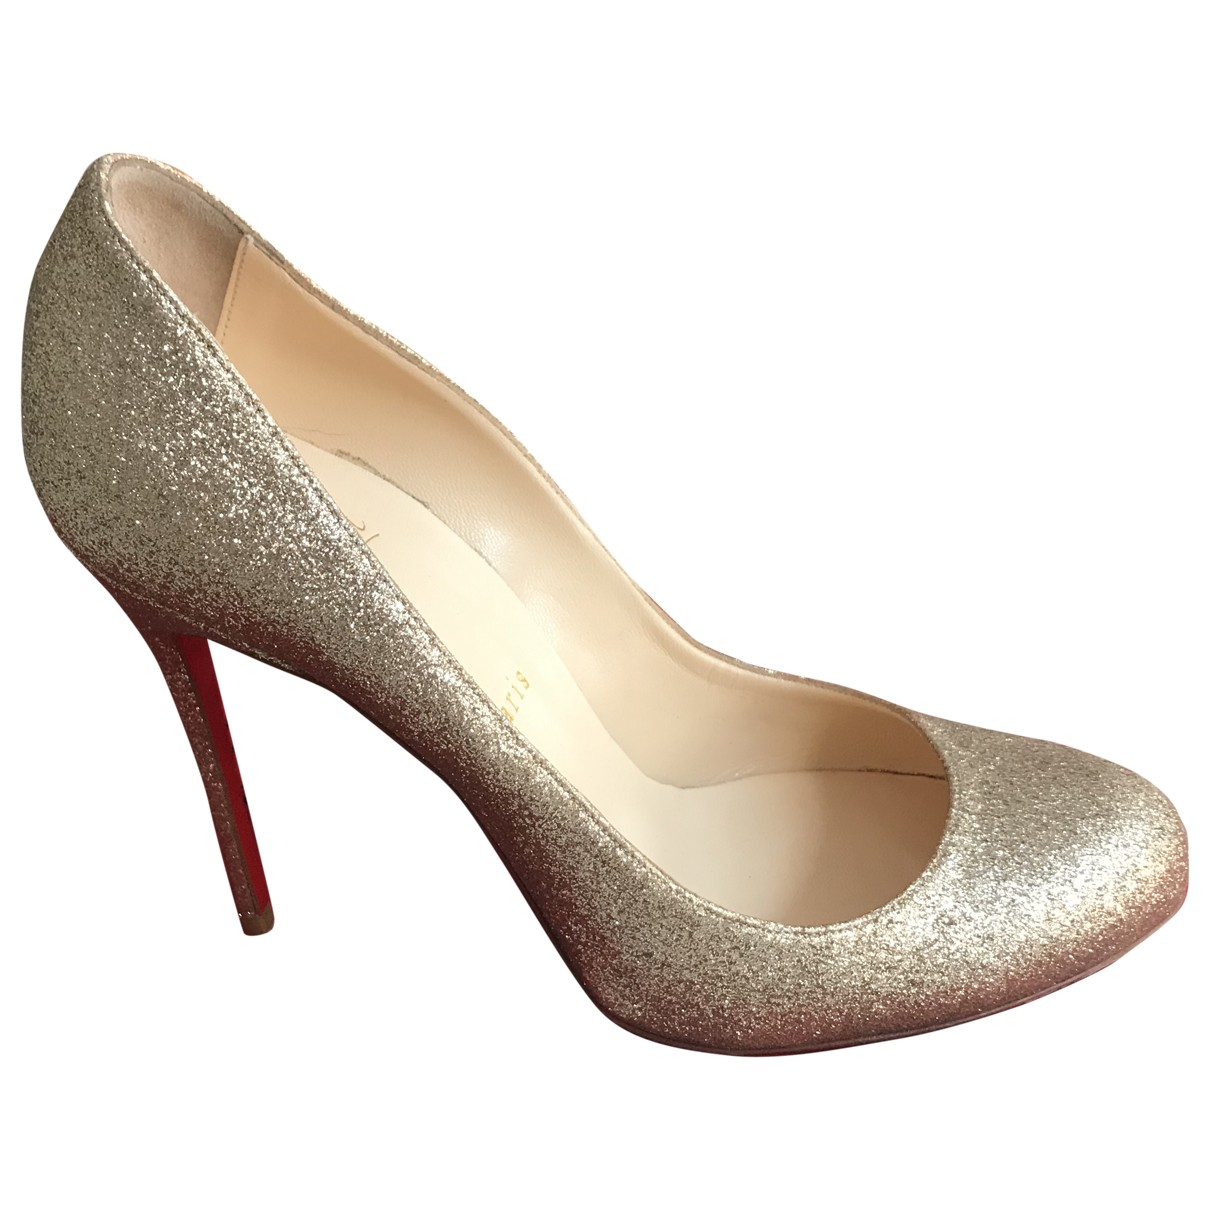 Christian Louboutin Simple pump Gold Glitter Heels for Women 40 EU